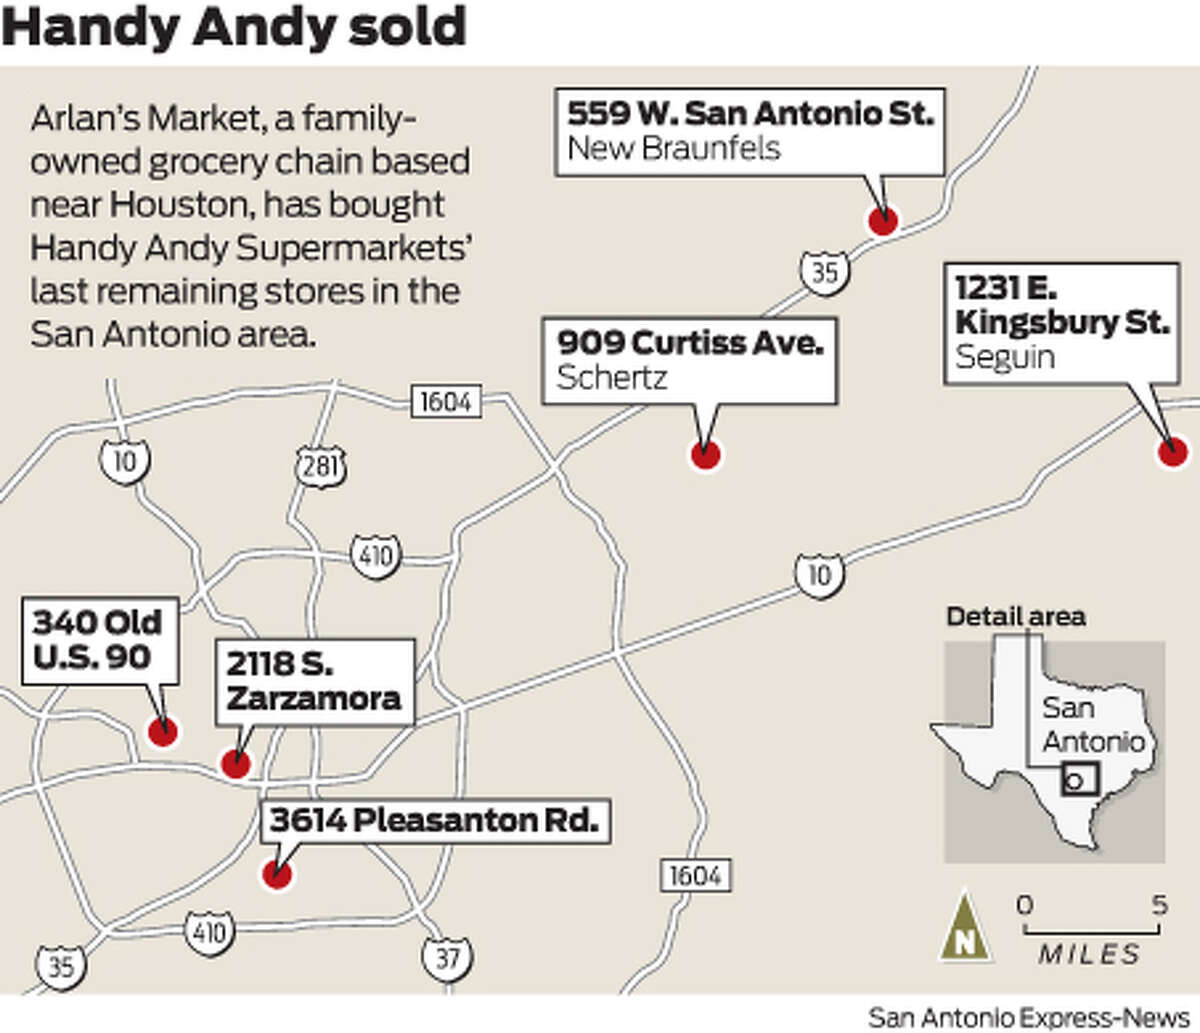 Arlan's Market, a family-owned grocery chain based near Houston, has bought Handy Andy Supermarkets' last remaining stores in the San Antonio area.